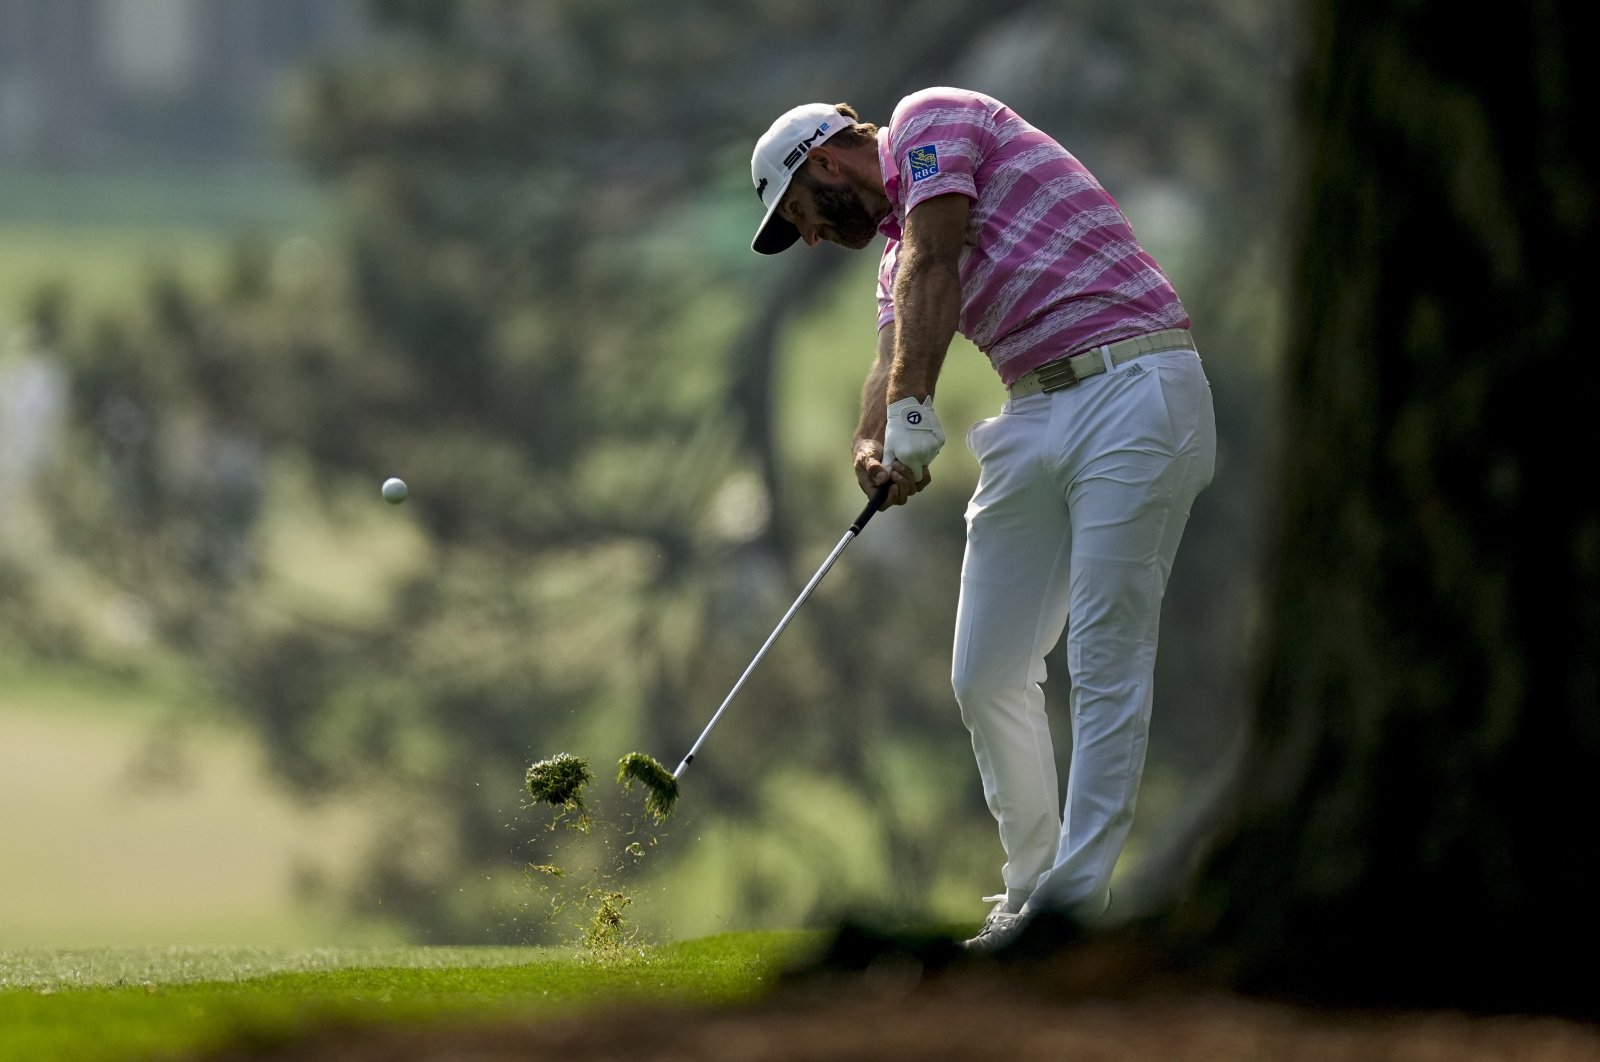 Dustin Johnson hits on the first fairway during the first round of the Masters golf tournament, Augusta, Ga., U.S., April 8, 2021. (AP Photo)